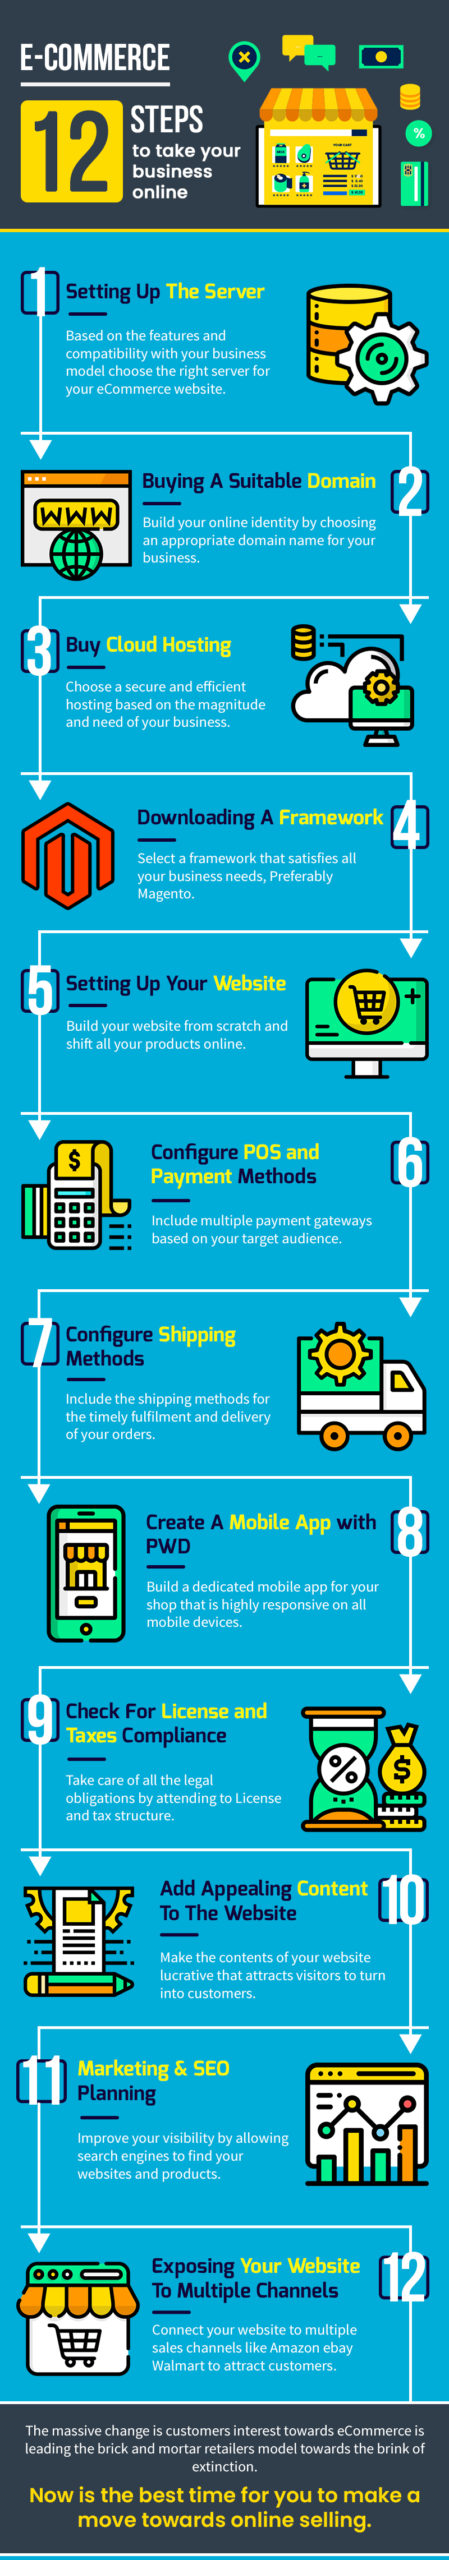 An Infographic on Steps to take Your Offline Business Online successfully